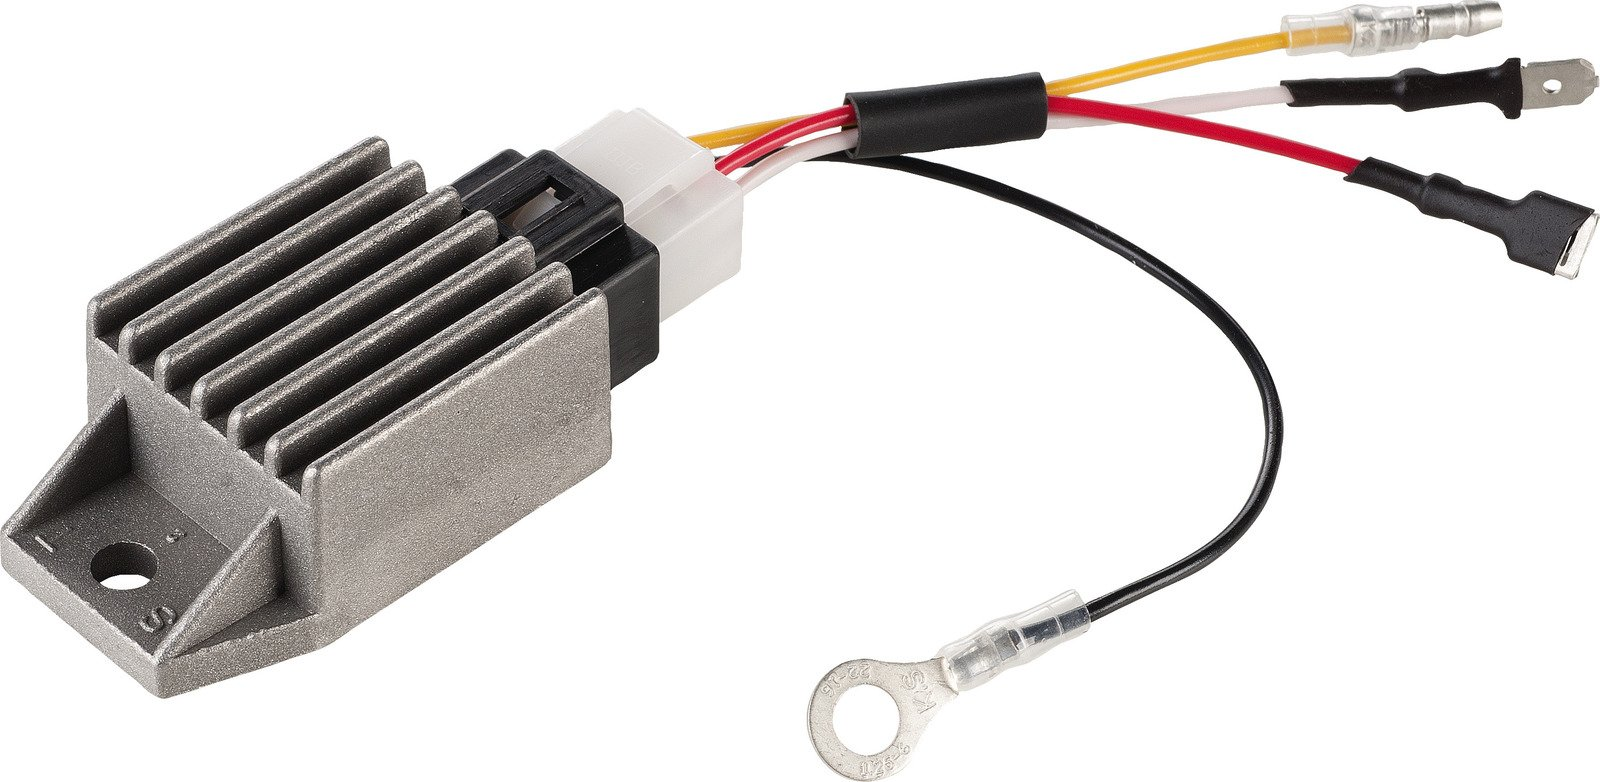 hight resolution of yamaha xt500 plugin regulator rectifier for 12v conversion kit simple to mount requires no modification of wiring loom replaces oem regulator and